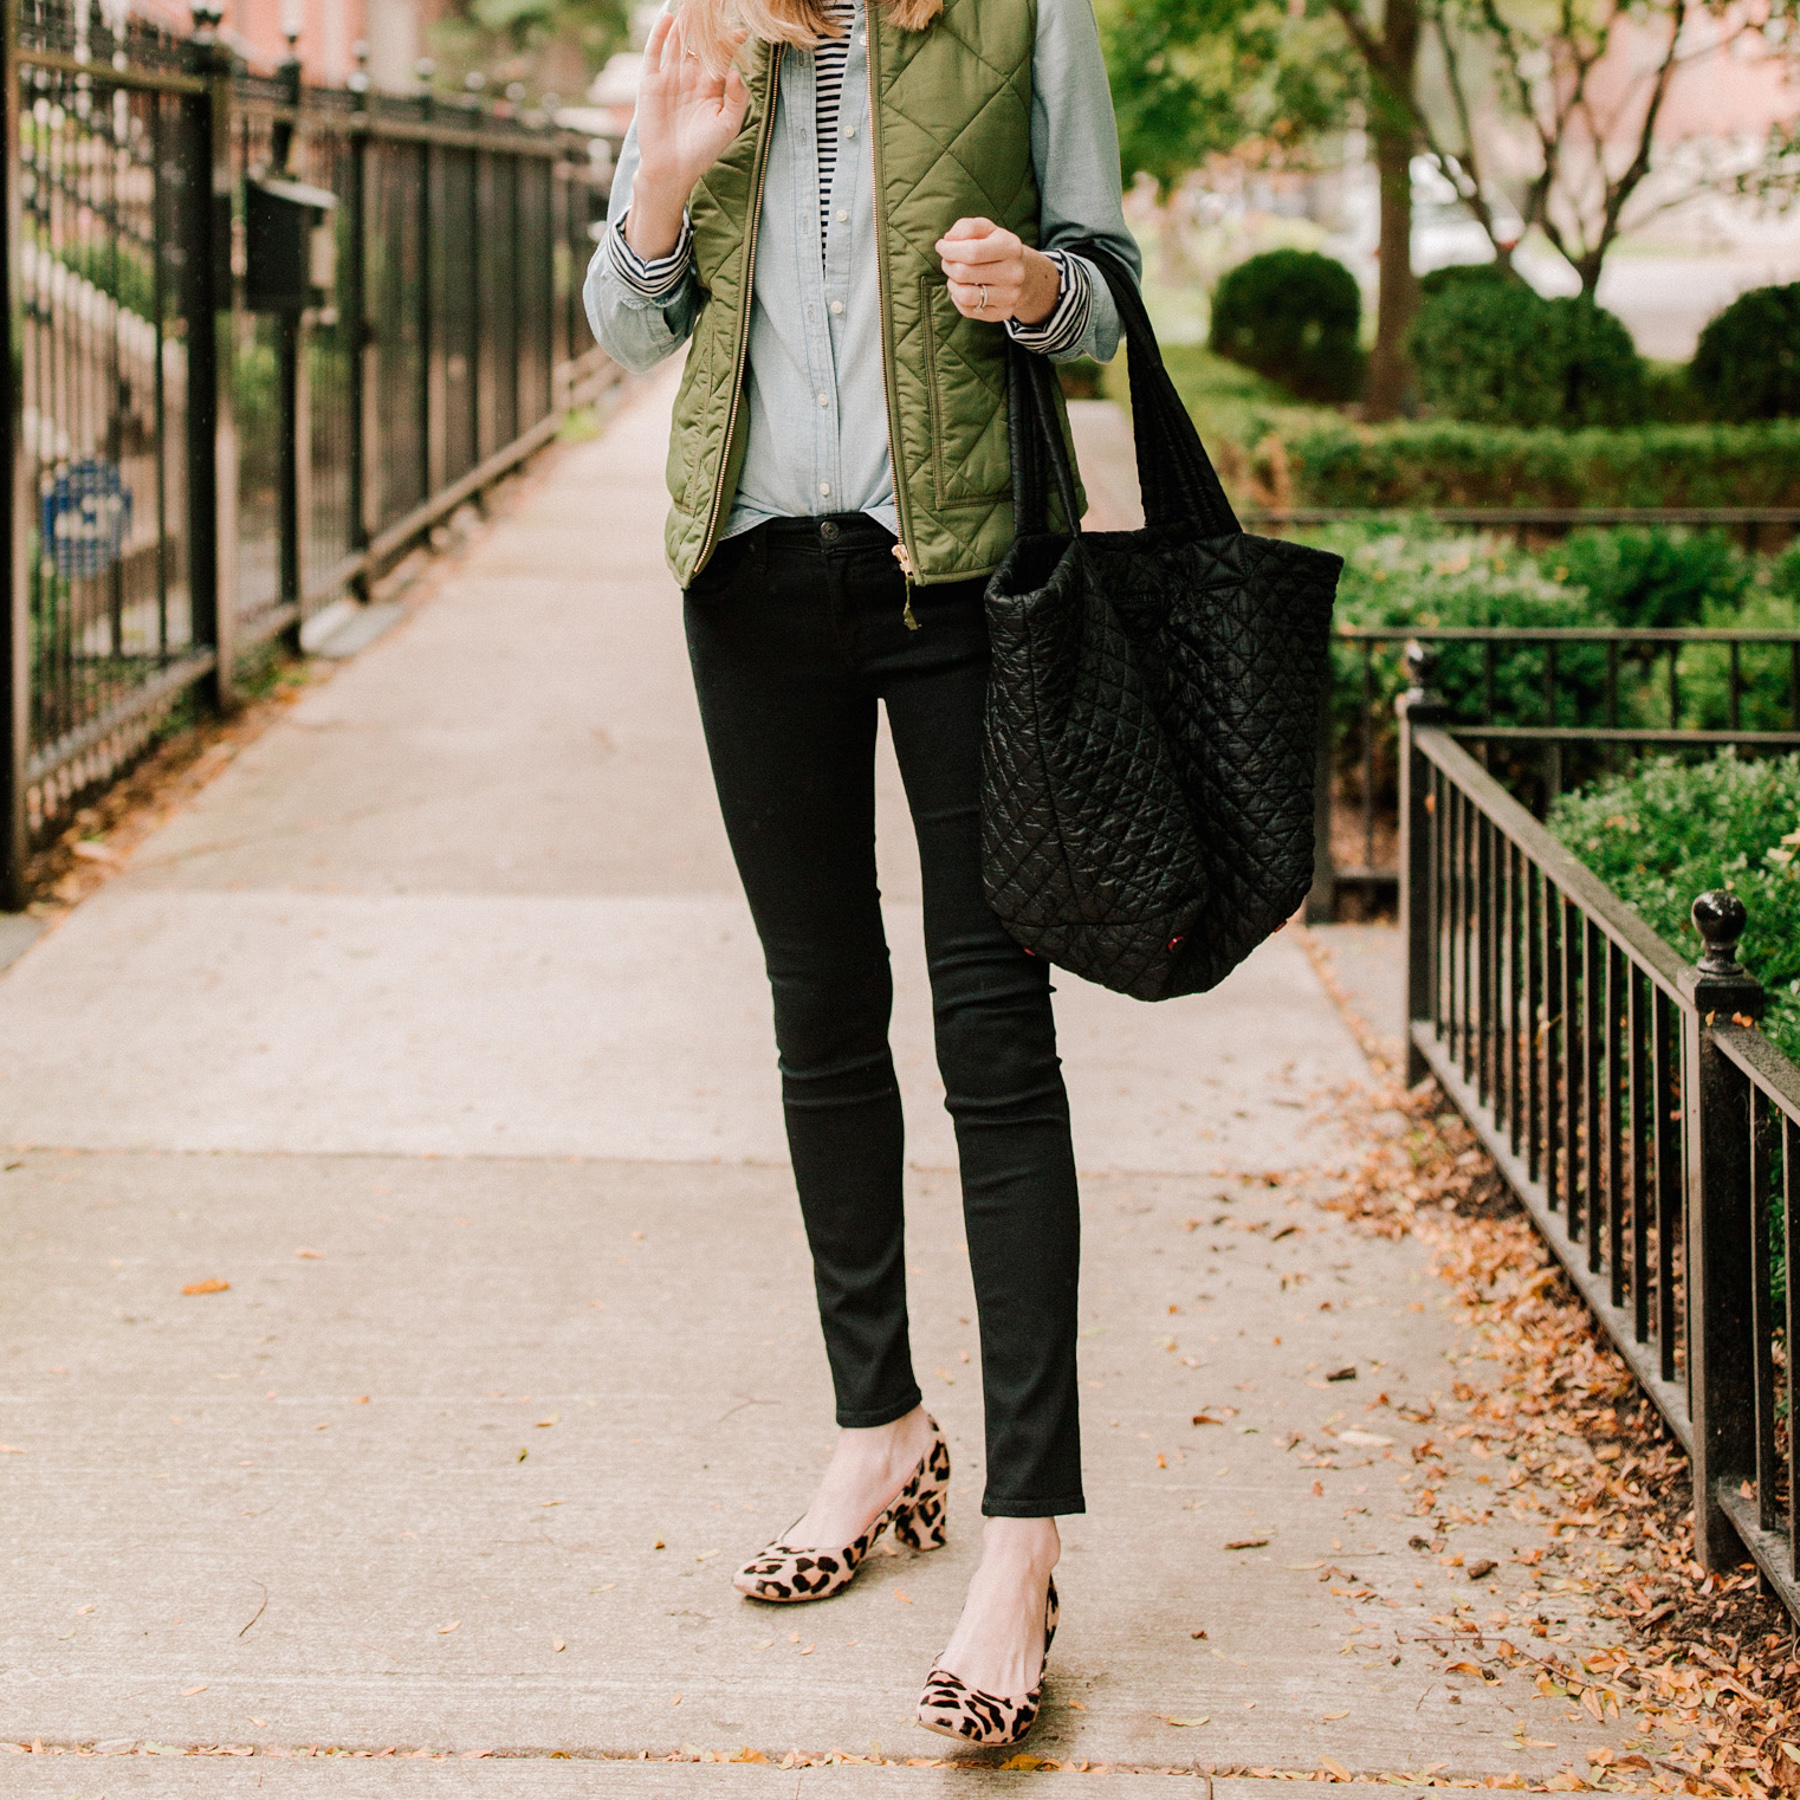 Chambray Shirt / Long-Sleeved Striped Tee / Puffer Vest / Leopard Pumps / Black Quilted Bag